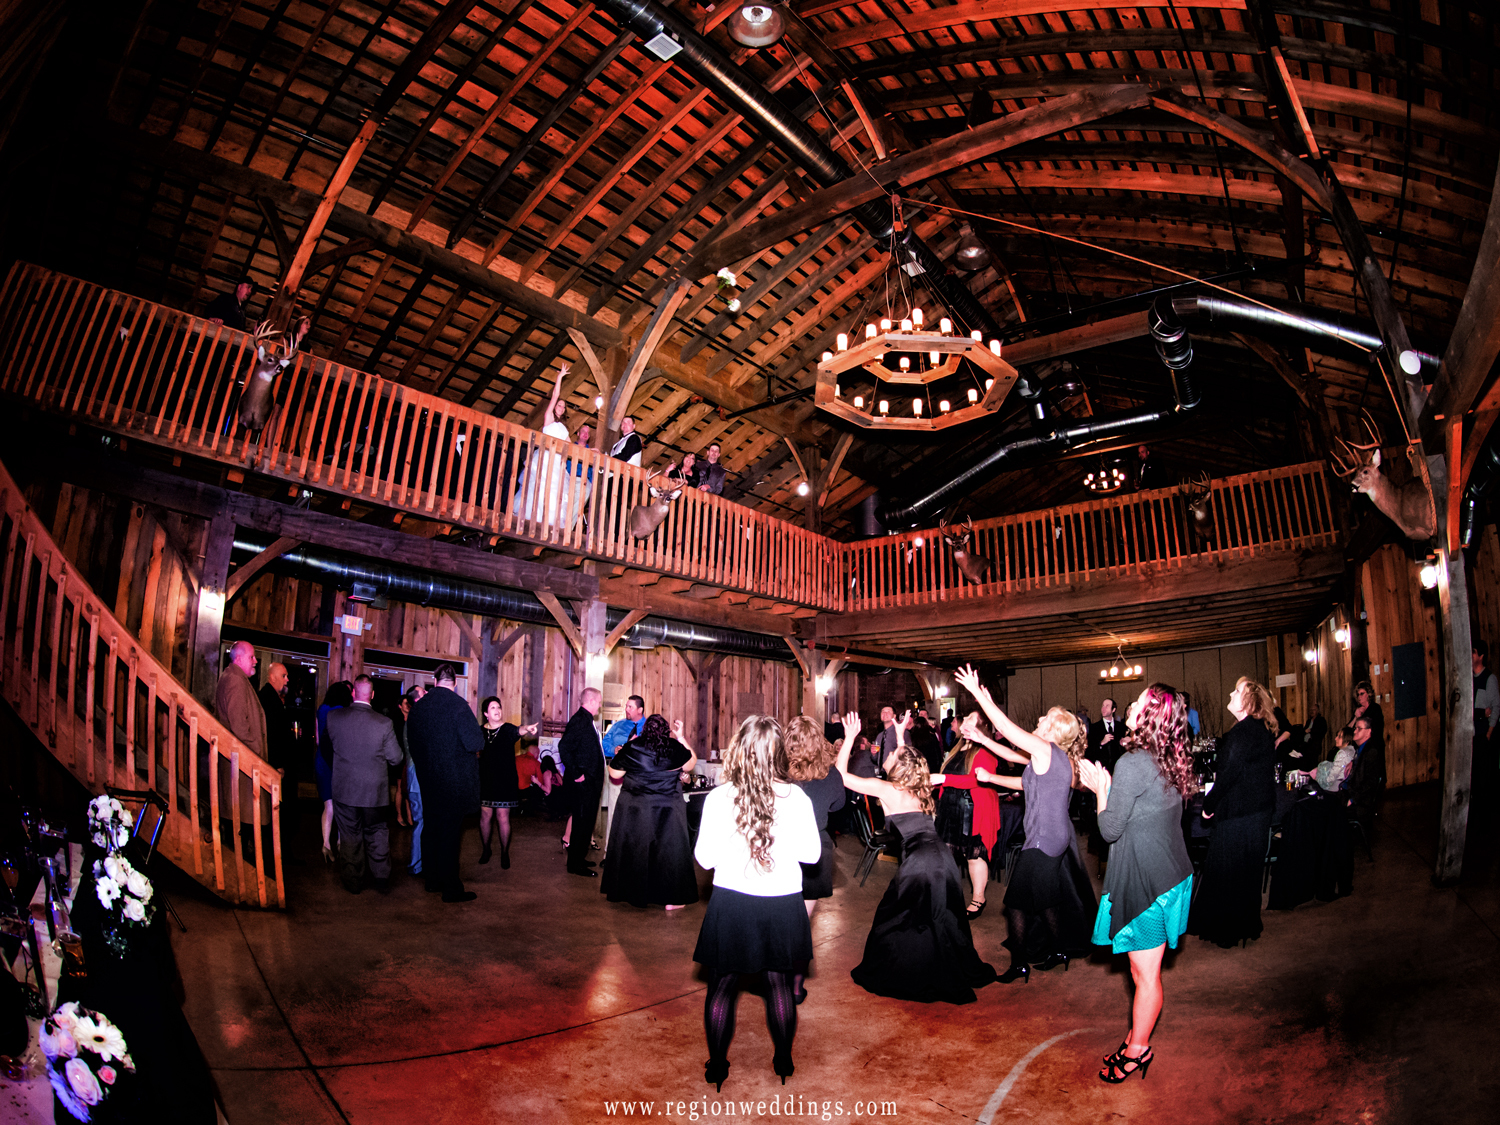 A crowd of women await on the dance floor as the bride tosses her bouquet from the balcony.